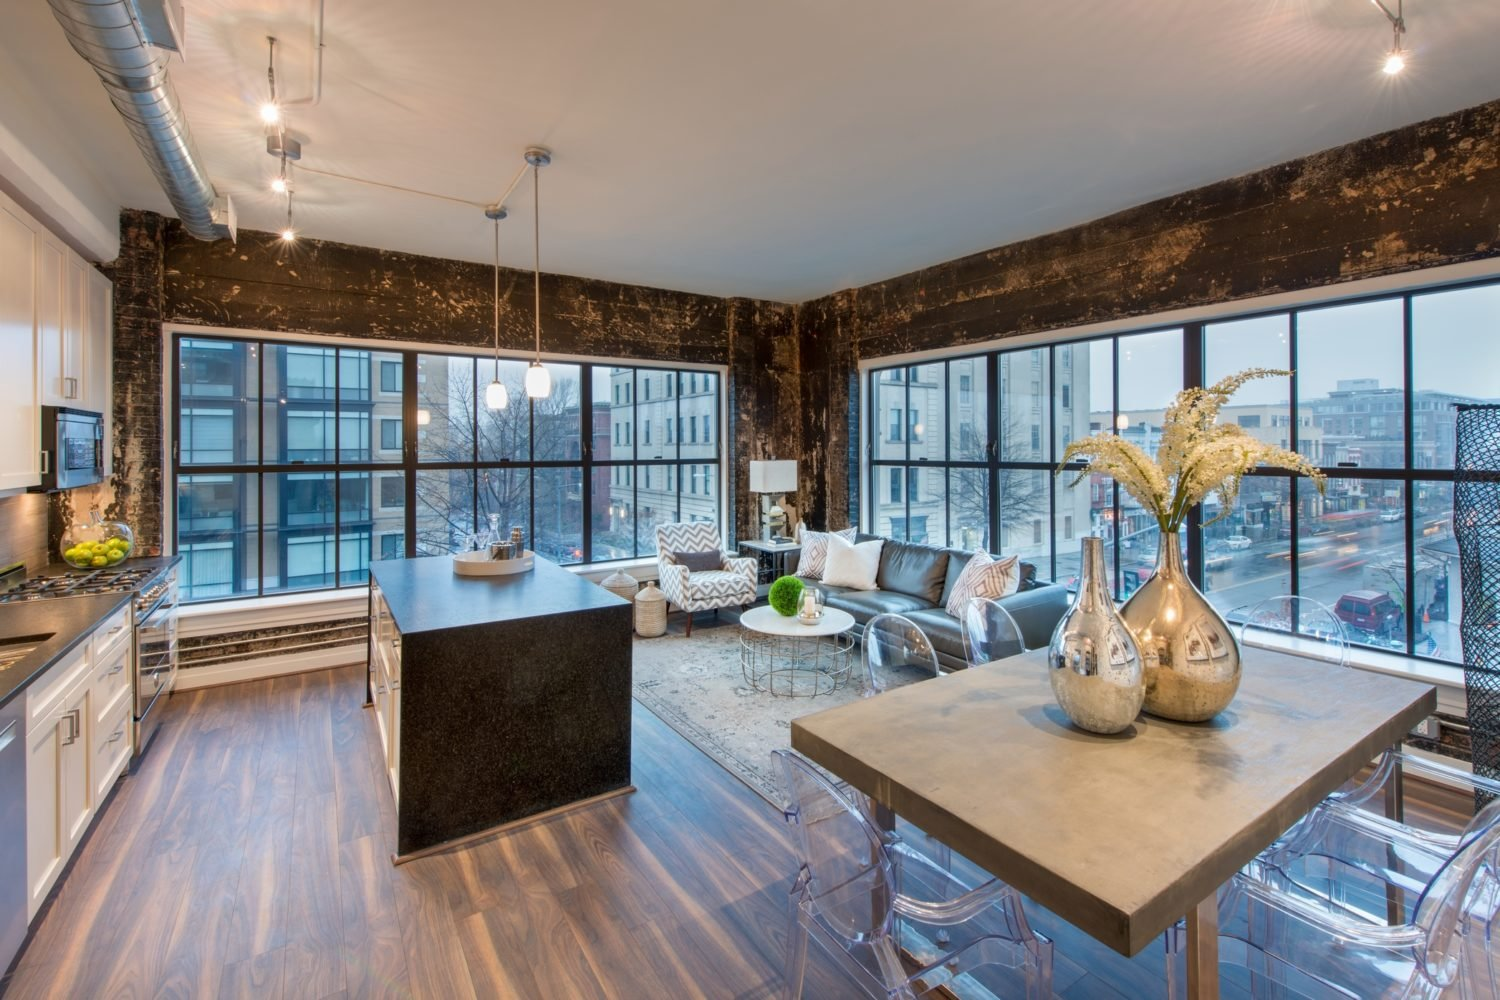 LUXURY LIVING IN A HISTORIC BUILDING IN THE HEART OF LOGAN CIRCLE